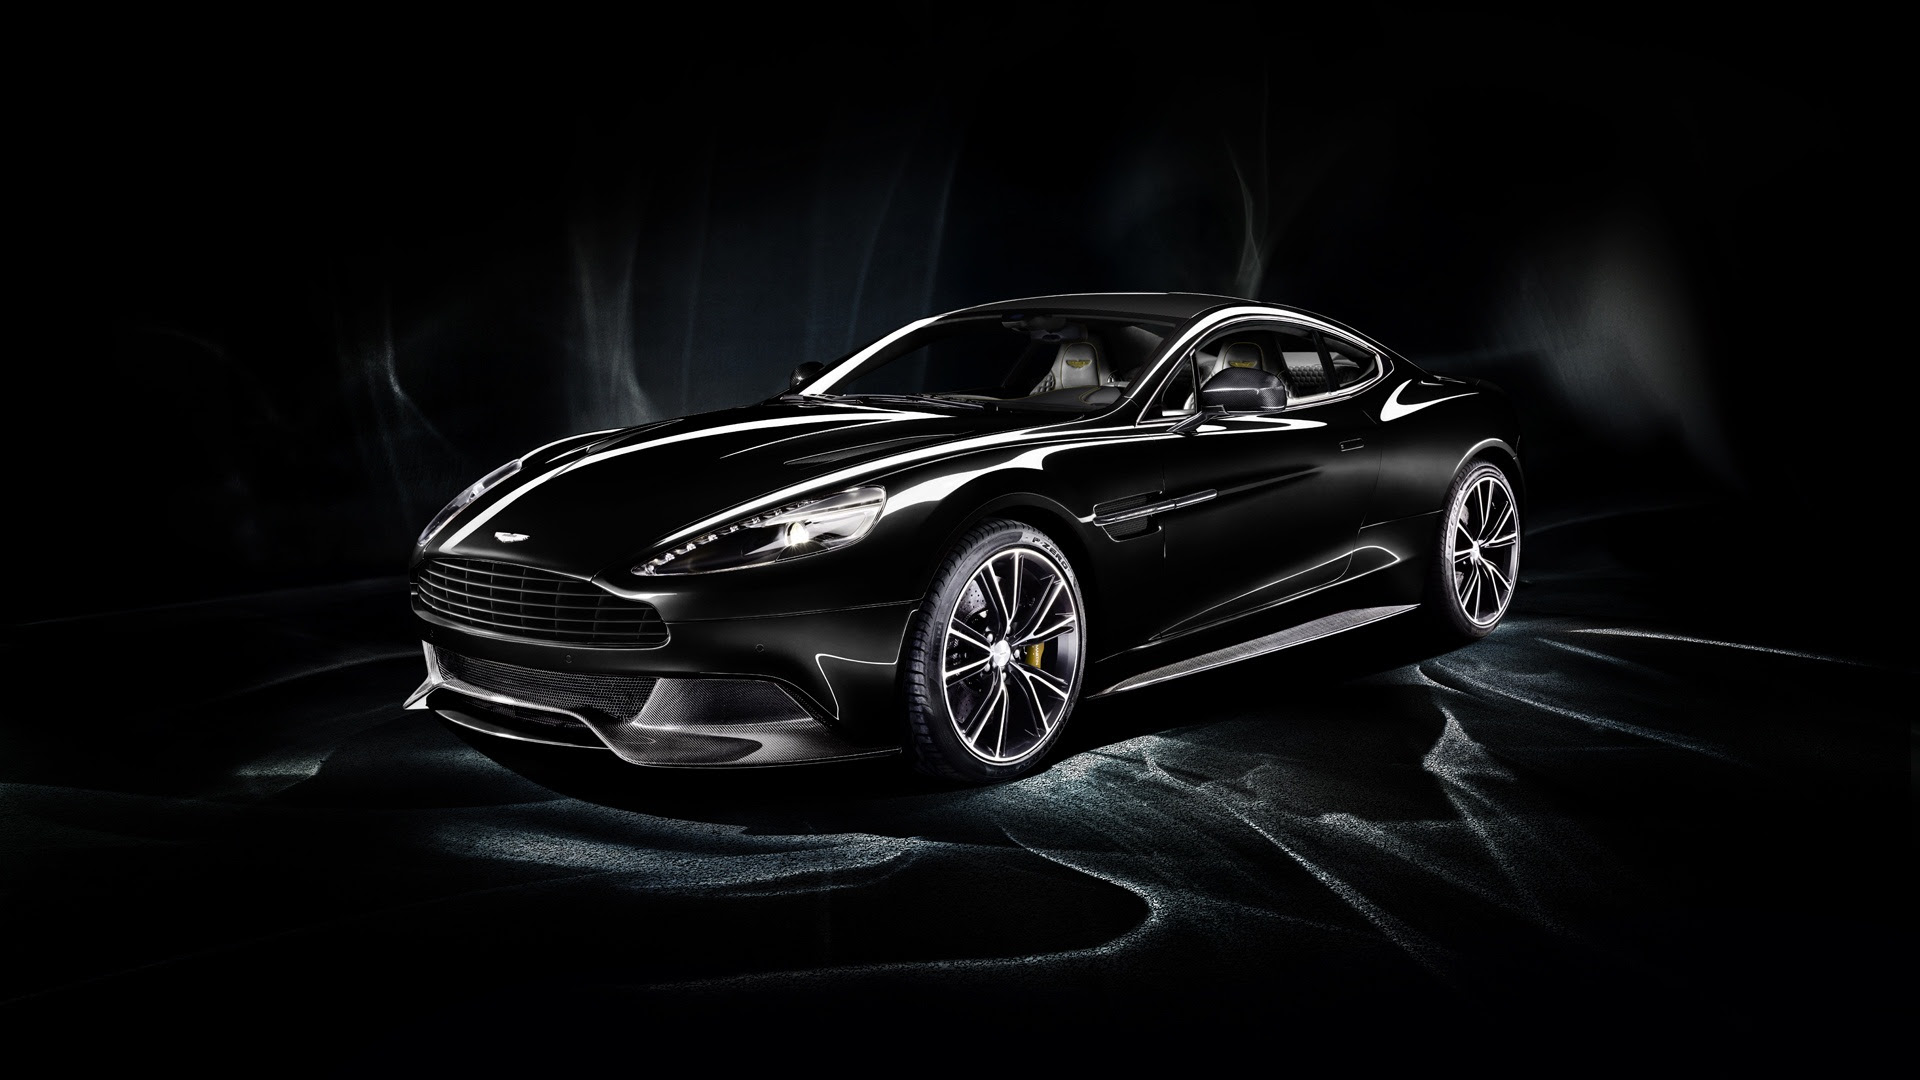 100 Ideas Aston Martin Hd Wallpaper On Www Awesoome Com Images, Photos, Reviews